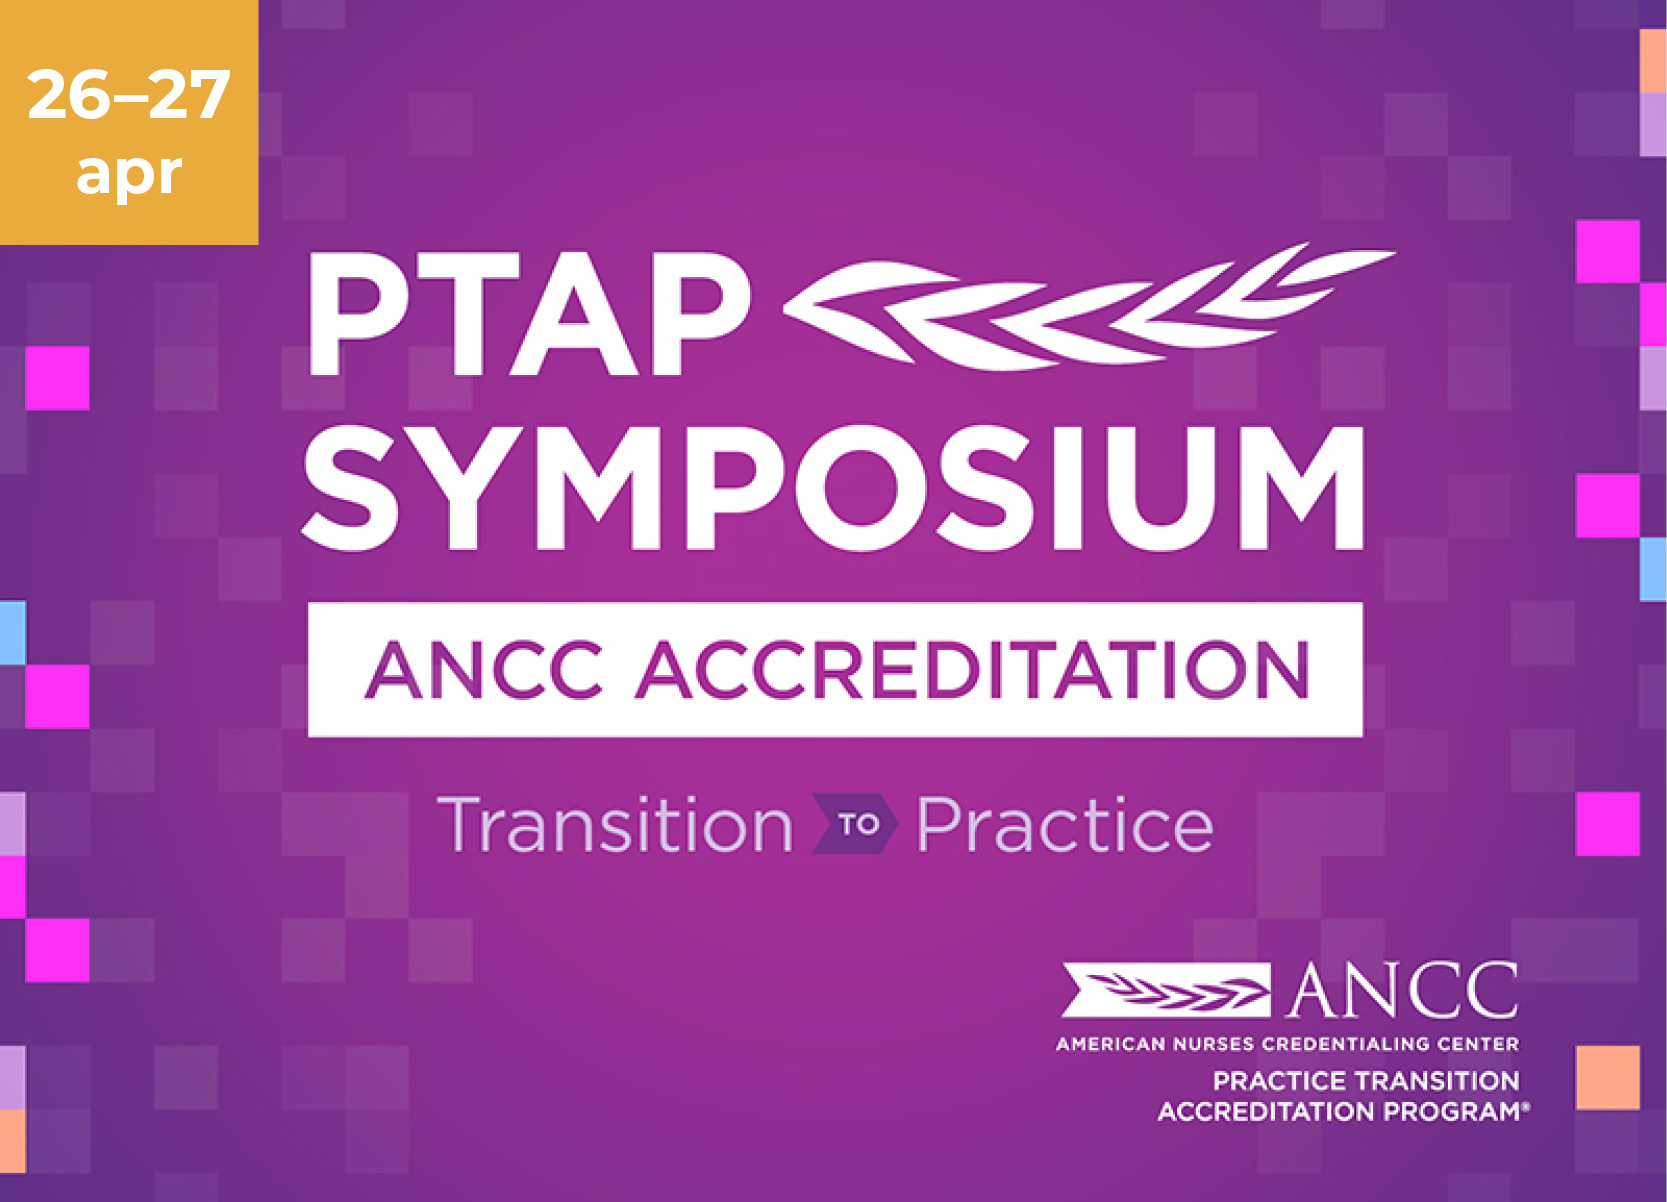 PTAP Symposium. ANCC Accreditation. Transition to Practice.